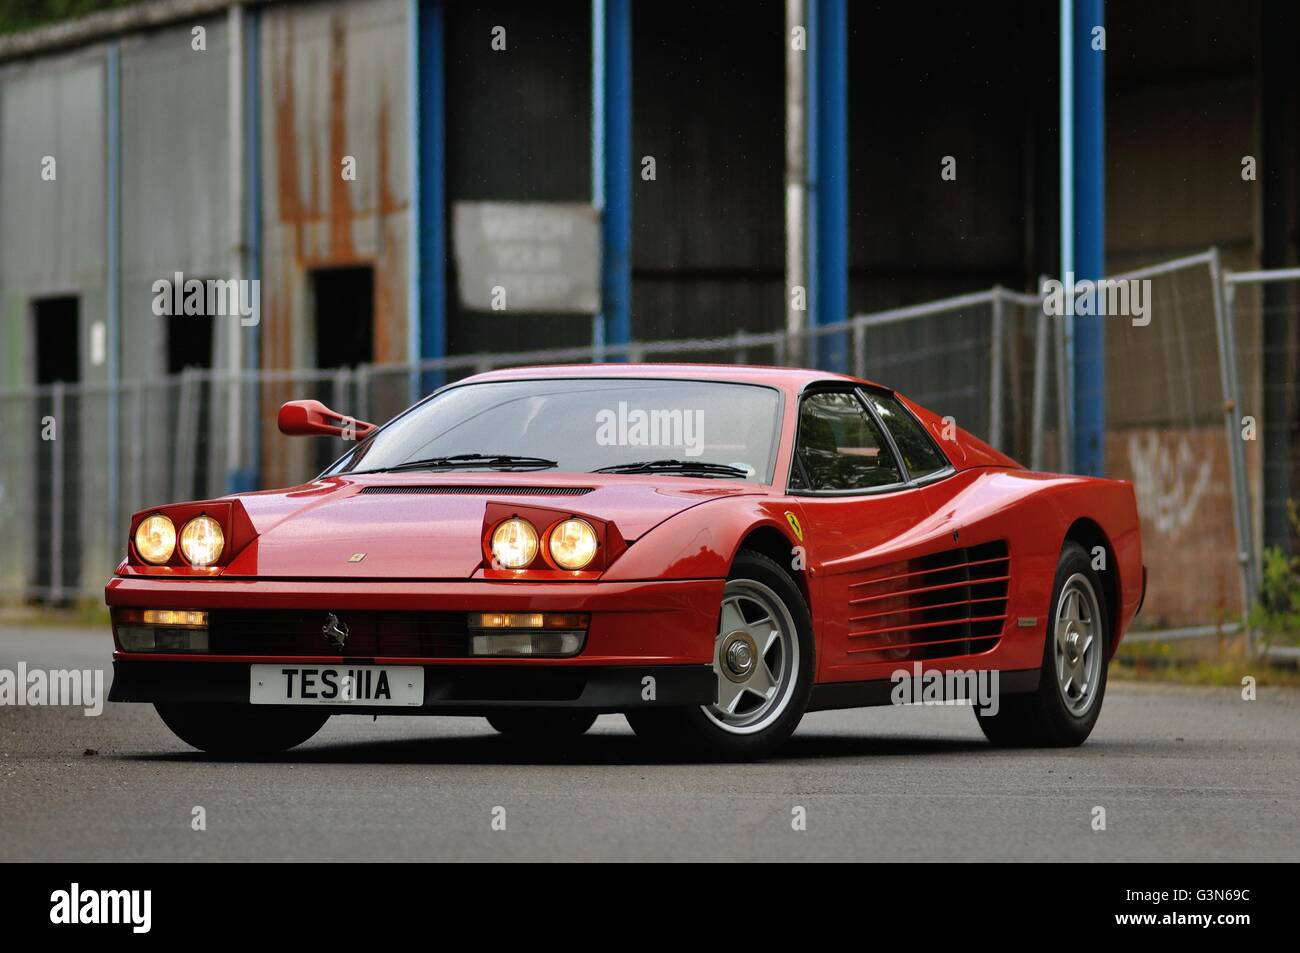 Testarossa stock photos testarossa stock images alamy an eighties ferrari testarossa stands with its headlights on in a disused industrial complex vanachro Gallery